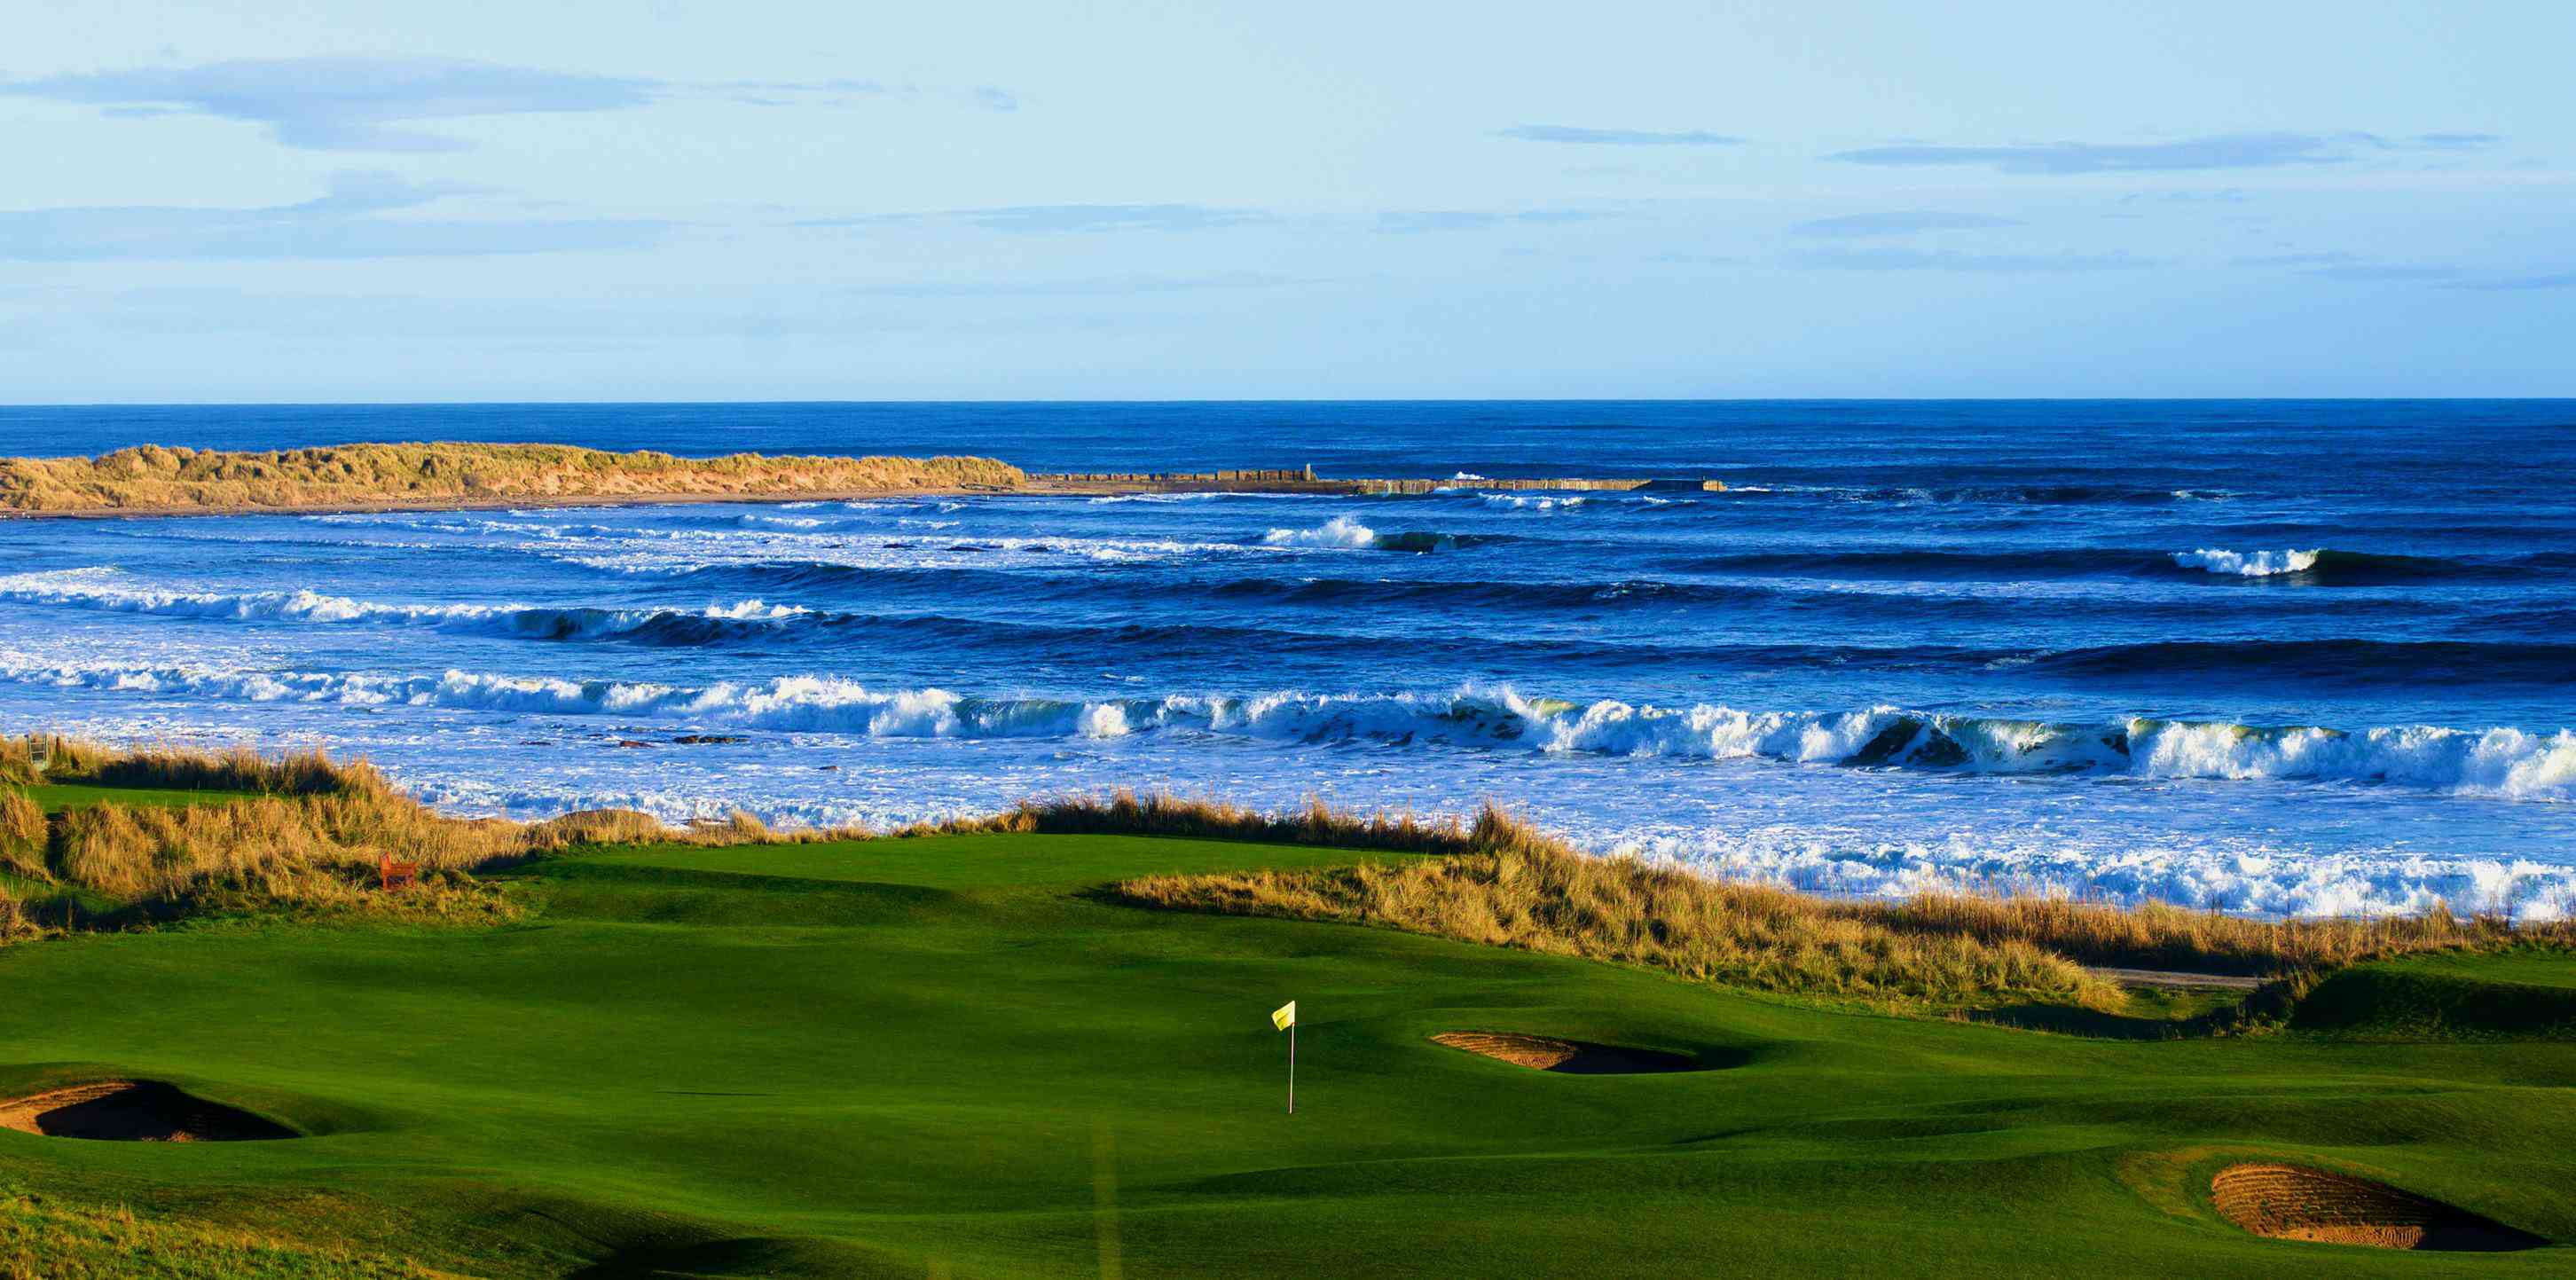 coastal Scotland golf course with waves breaking